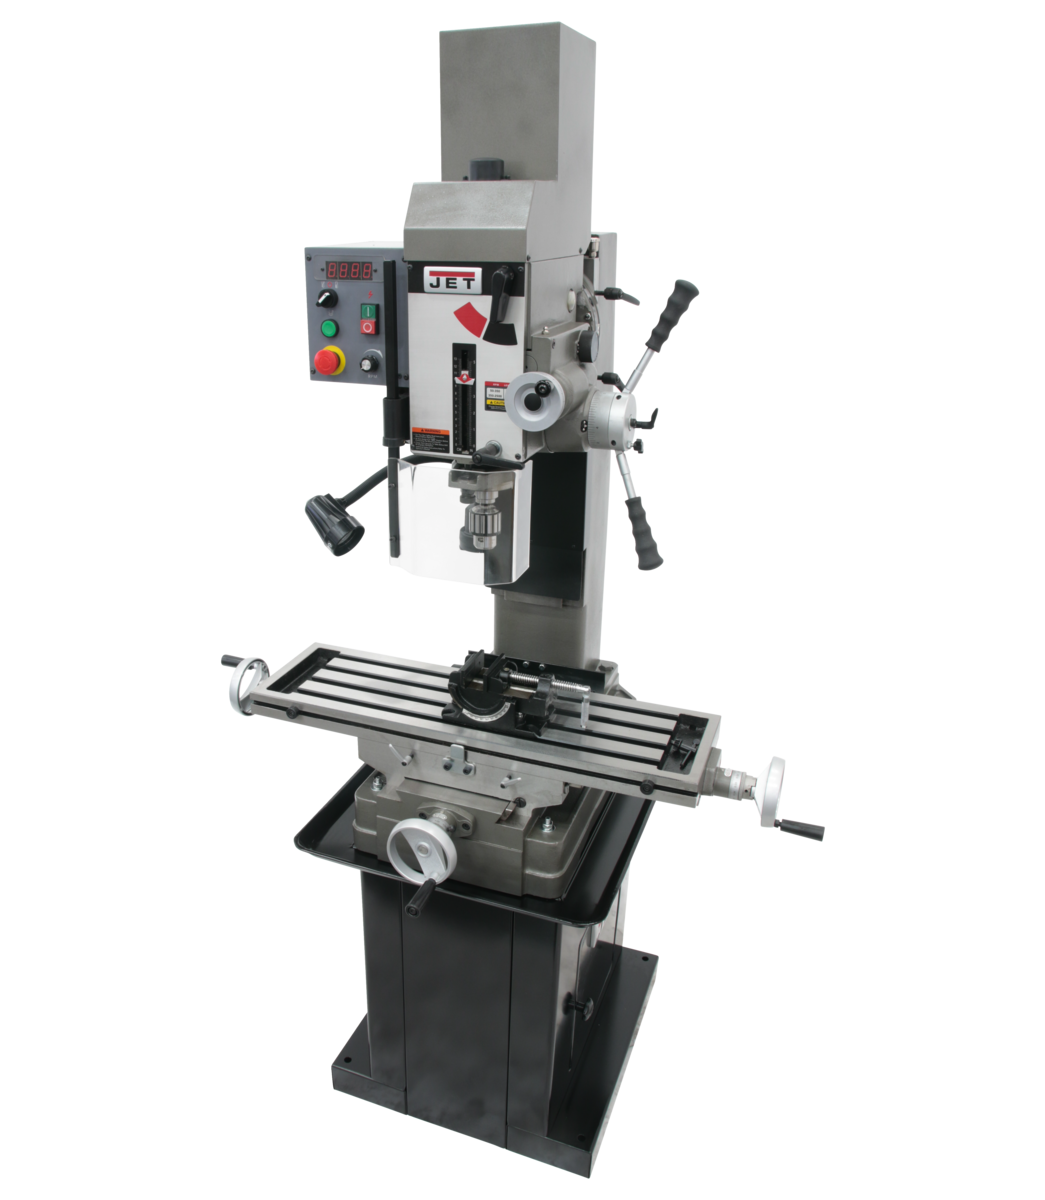 JMD-45VSPFT Variable Speed Geared Head Square Column Mill/Drill with Power Downfeed & Newall DP500 2-Axis DRO & X-Axis Powerfeed